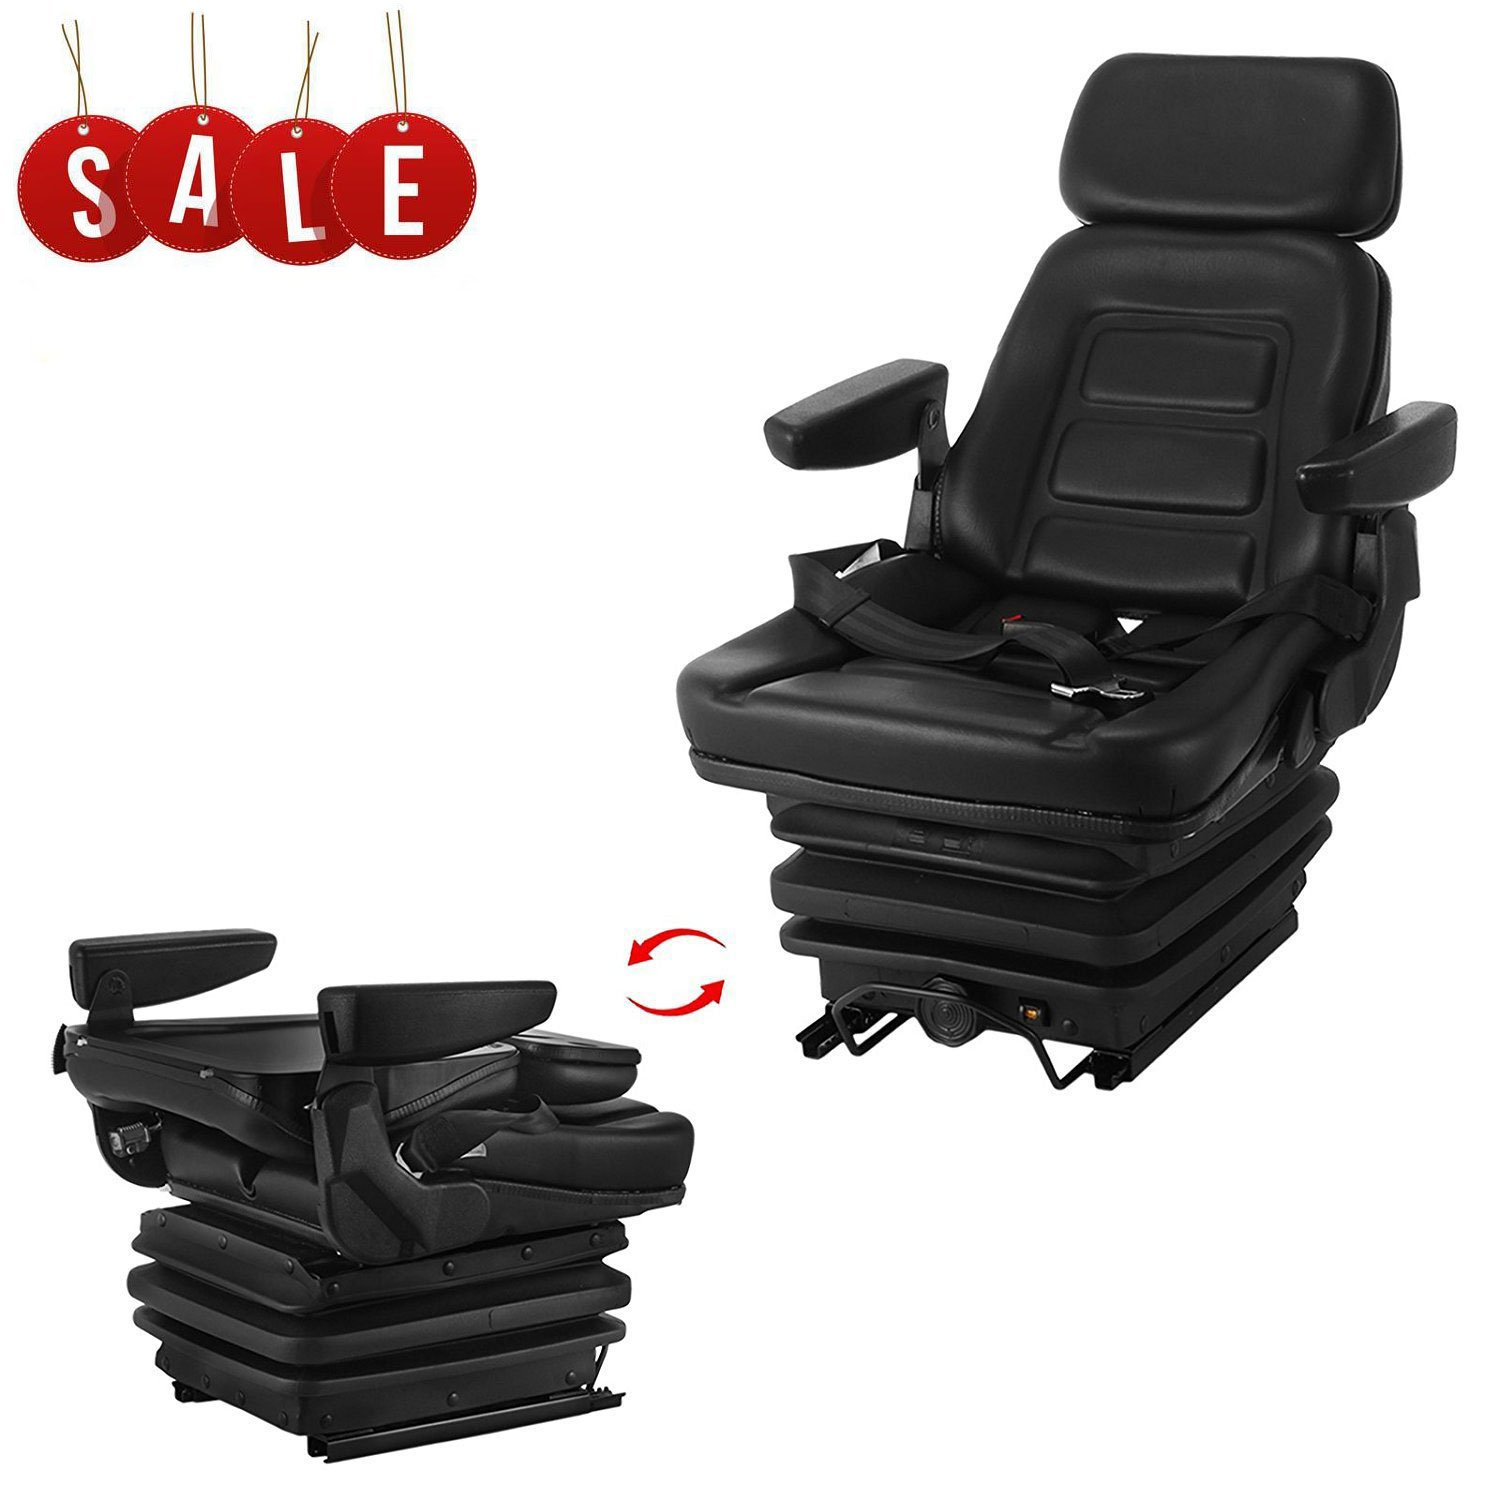 Happybuy Universal Pro Seat and Suspension Seat with Adjustable Armrest Industrial Forklift Vinyl Seat with High Shock Absorption for Riding Mowers Tractors Excavator Trenchers Wheel Loader